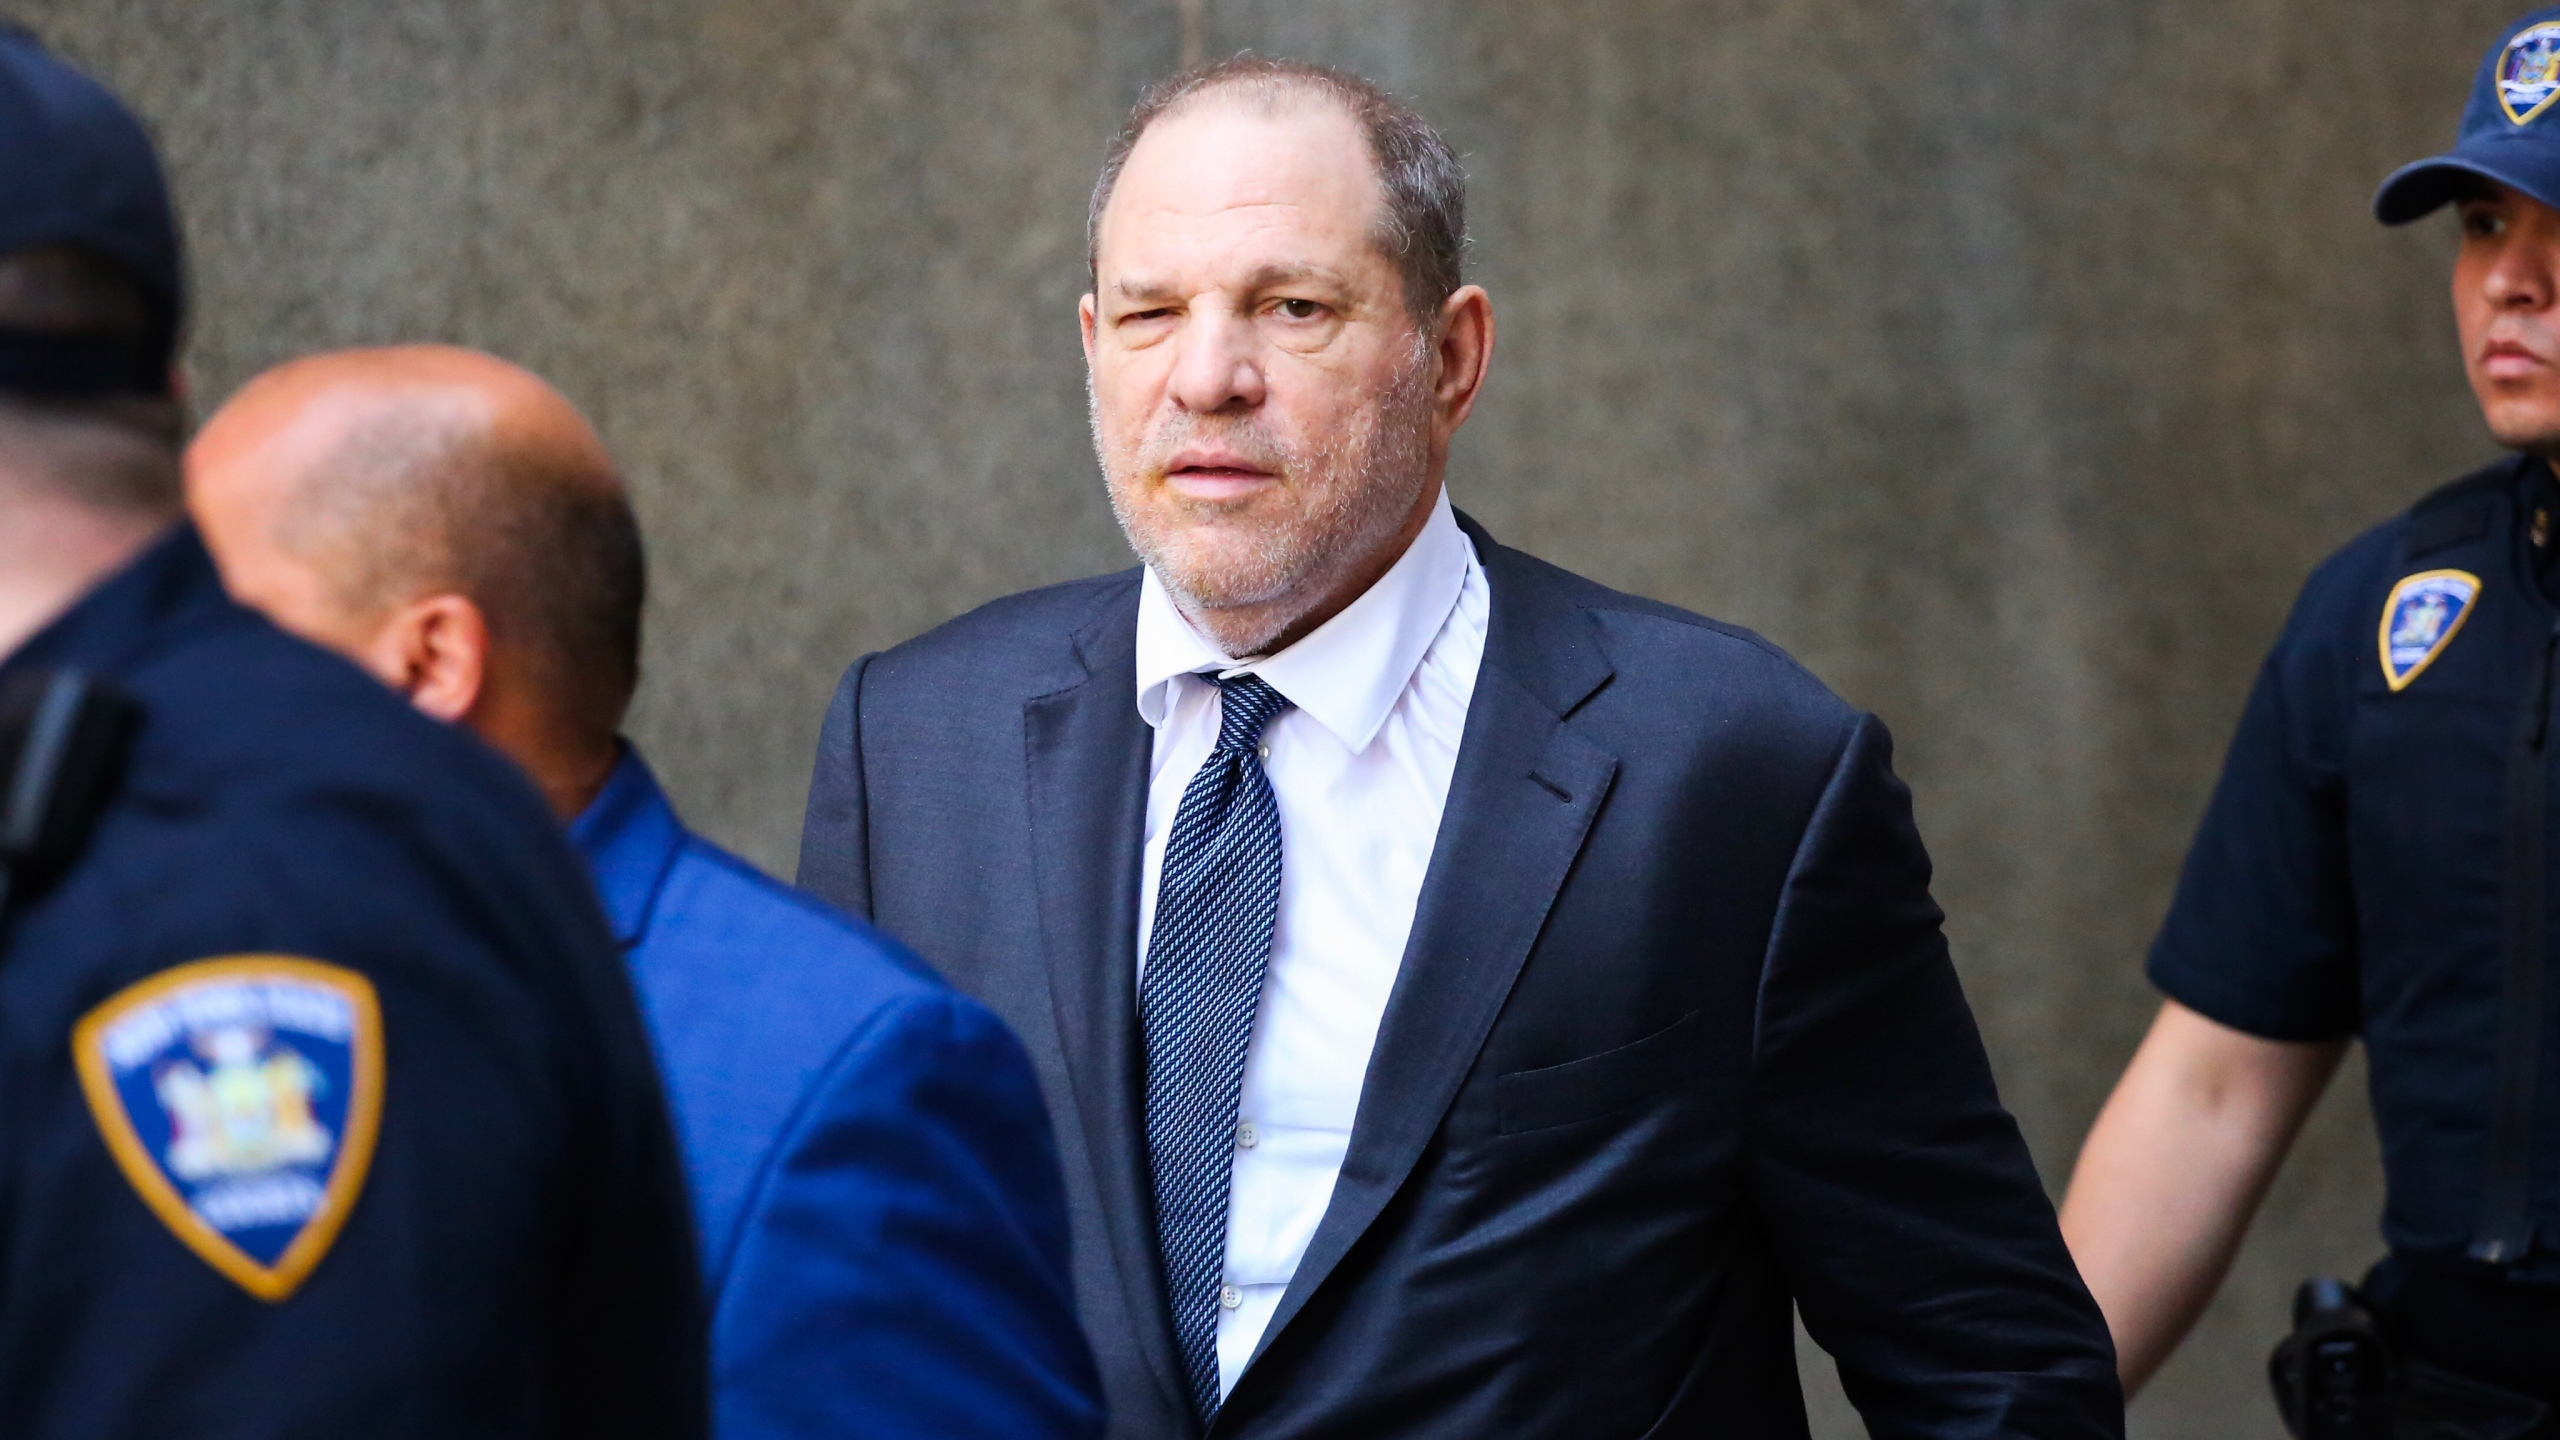 Disgraced movie mogul Harvey Weinstein exits after his appearance in criminal court on sexual assault charges on July 11, 2019, in New York City. (Credit: Kena Betancur/Getty Images)